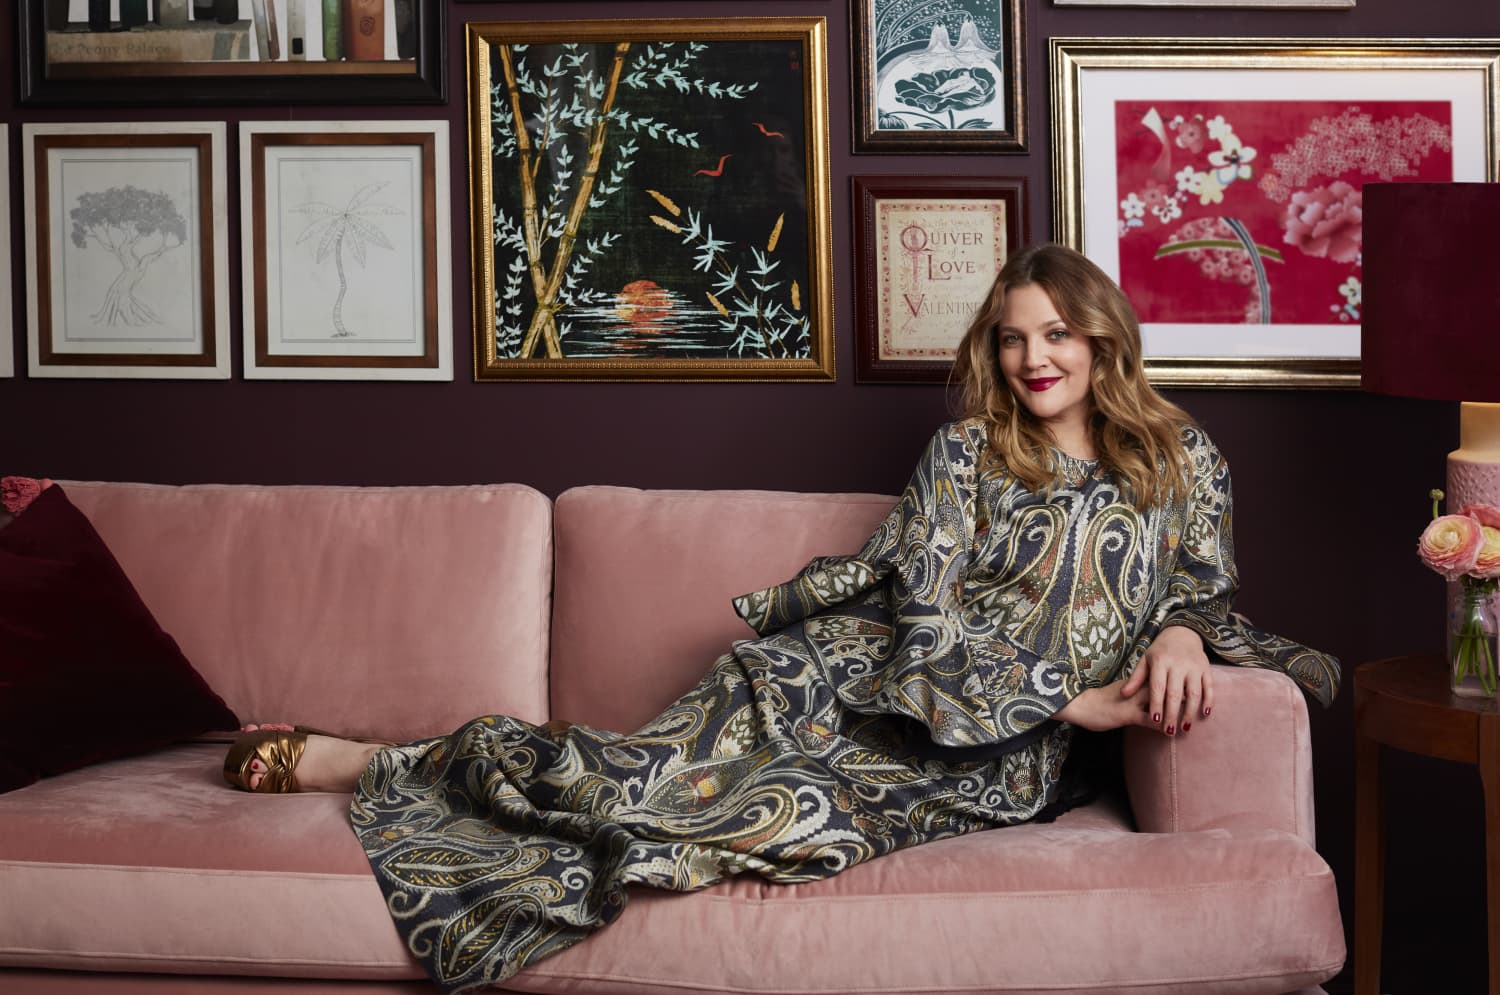 Surprise! Drew Barrymore Just Launched a Home Line With Walmart and Wow, We Want it All